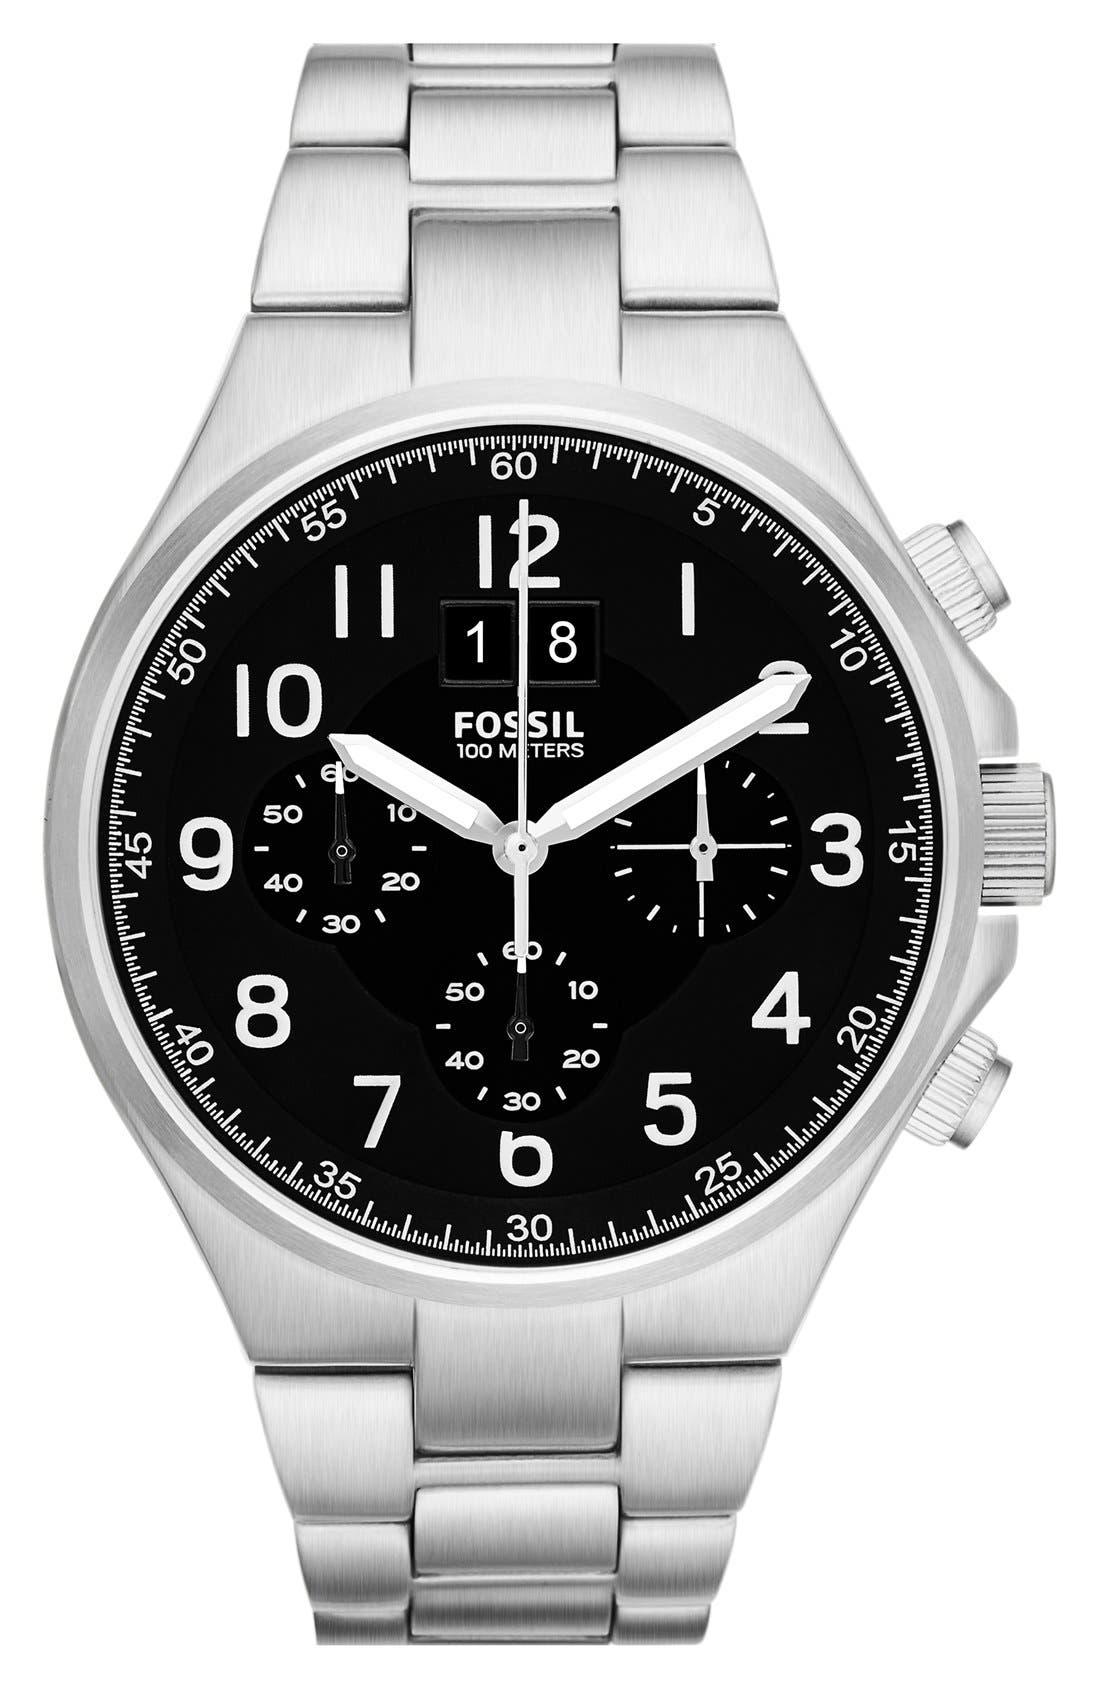 Main Image - Fossil 'Qualifier' Chronograph Bracelet Watch, 46mm